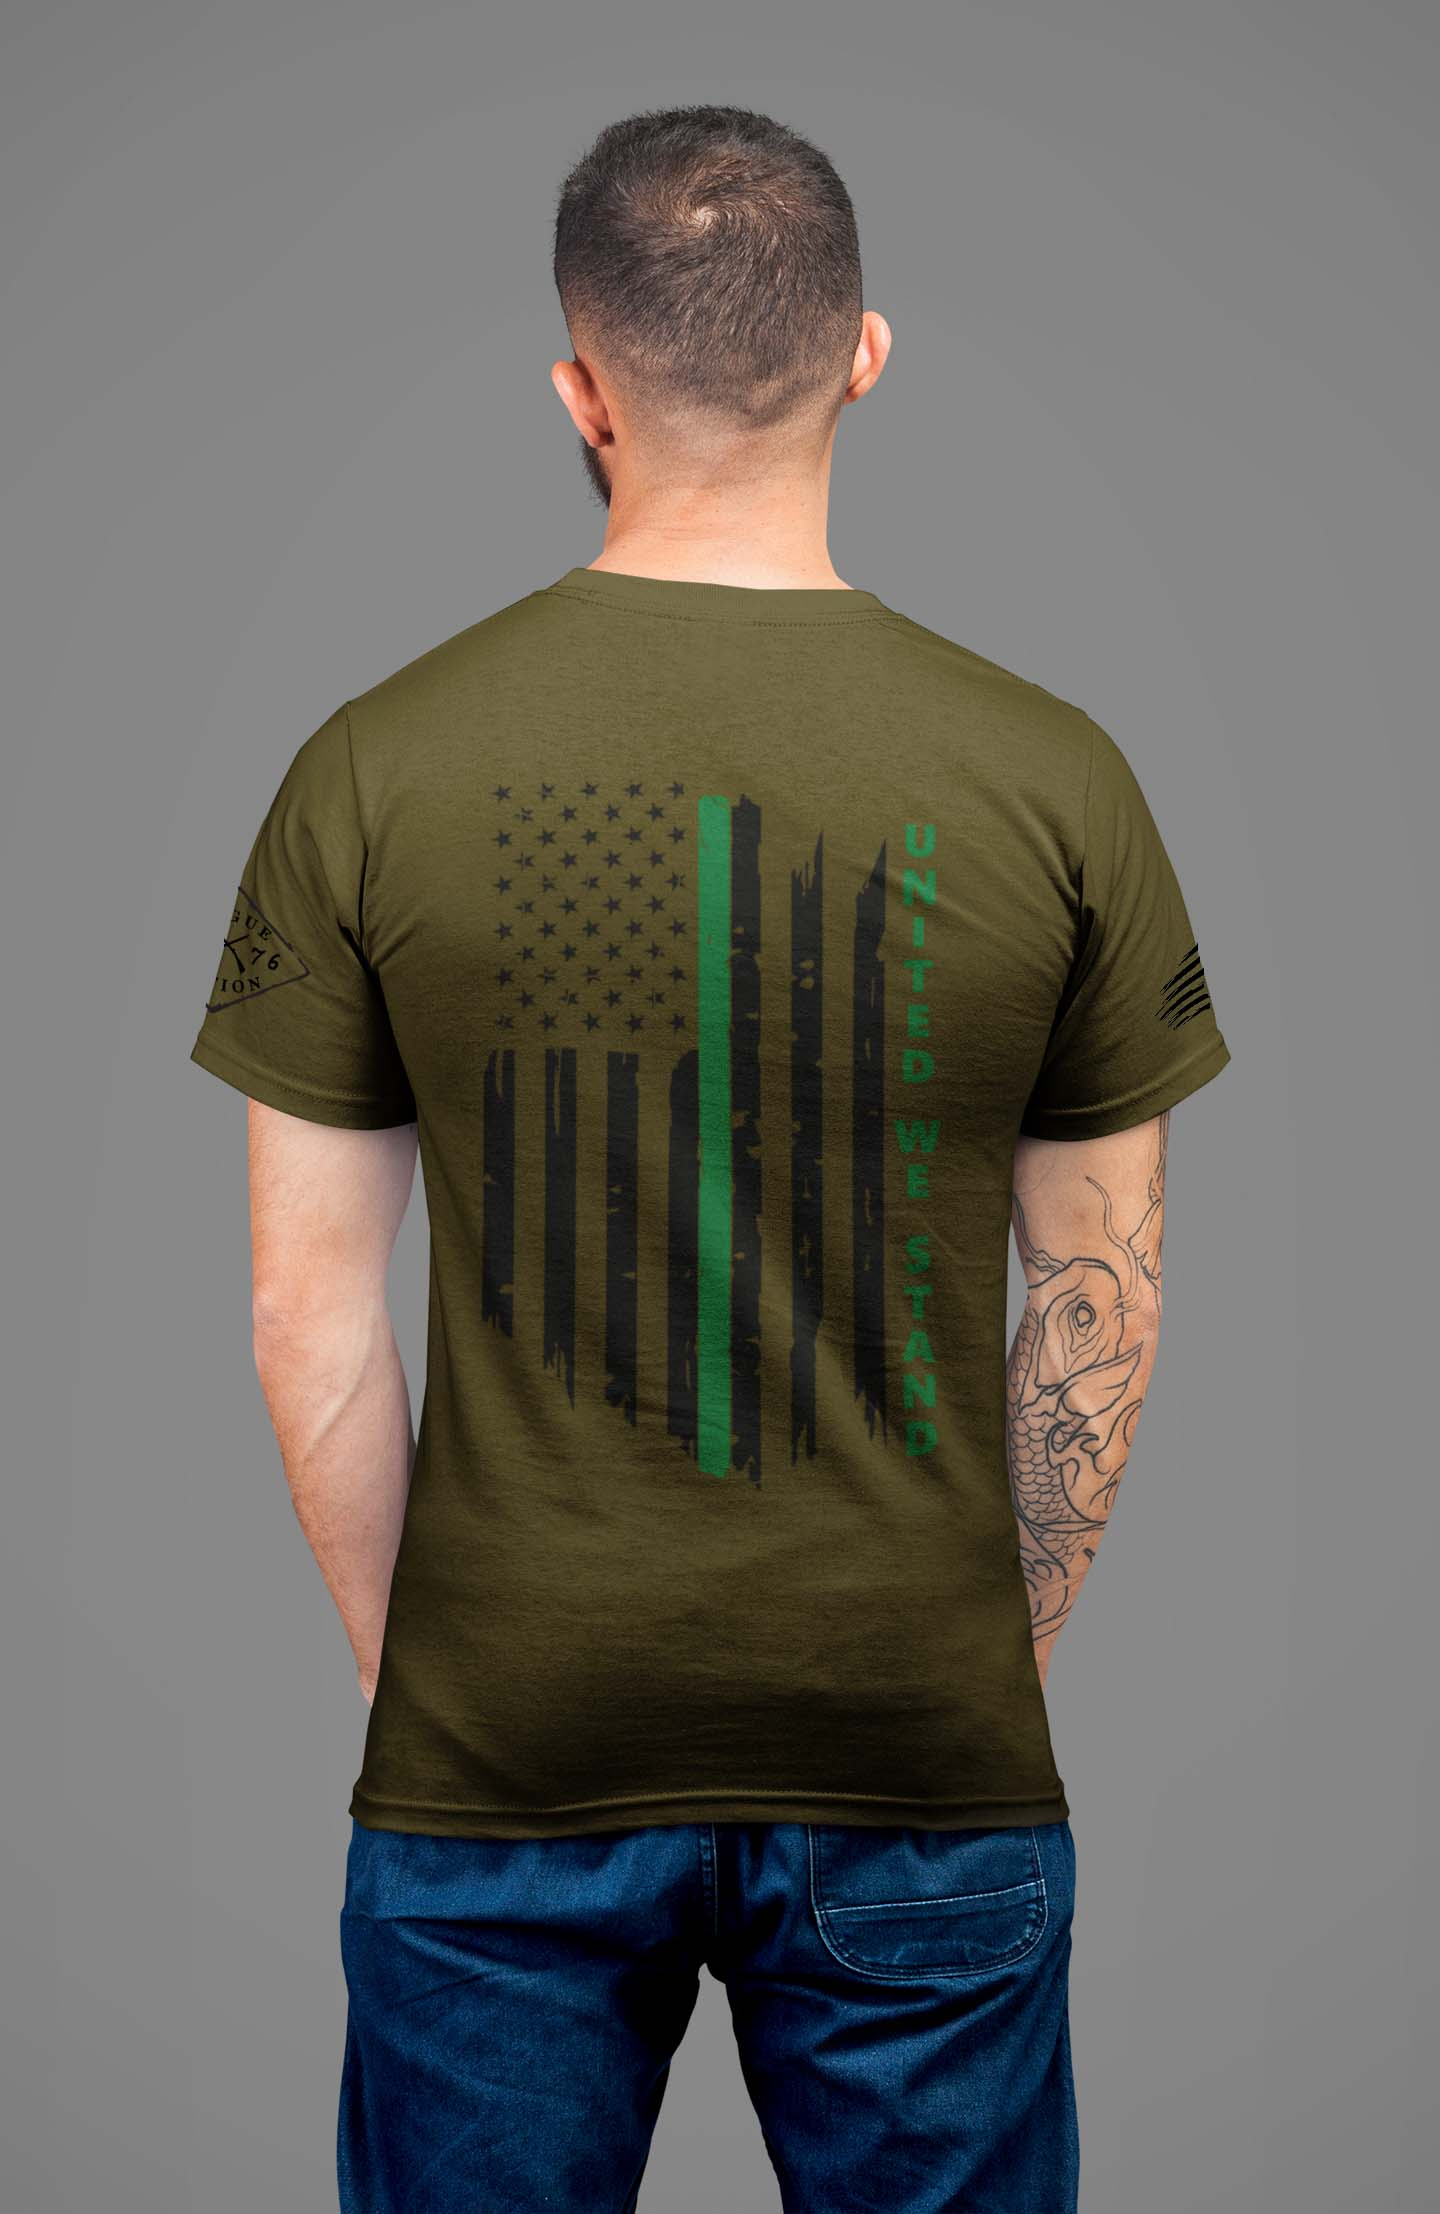 t-shirt with united we stand back for military on army mens